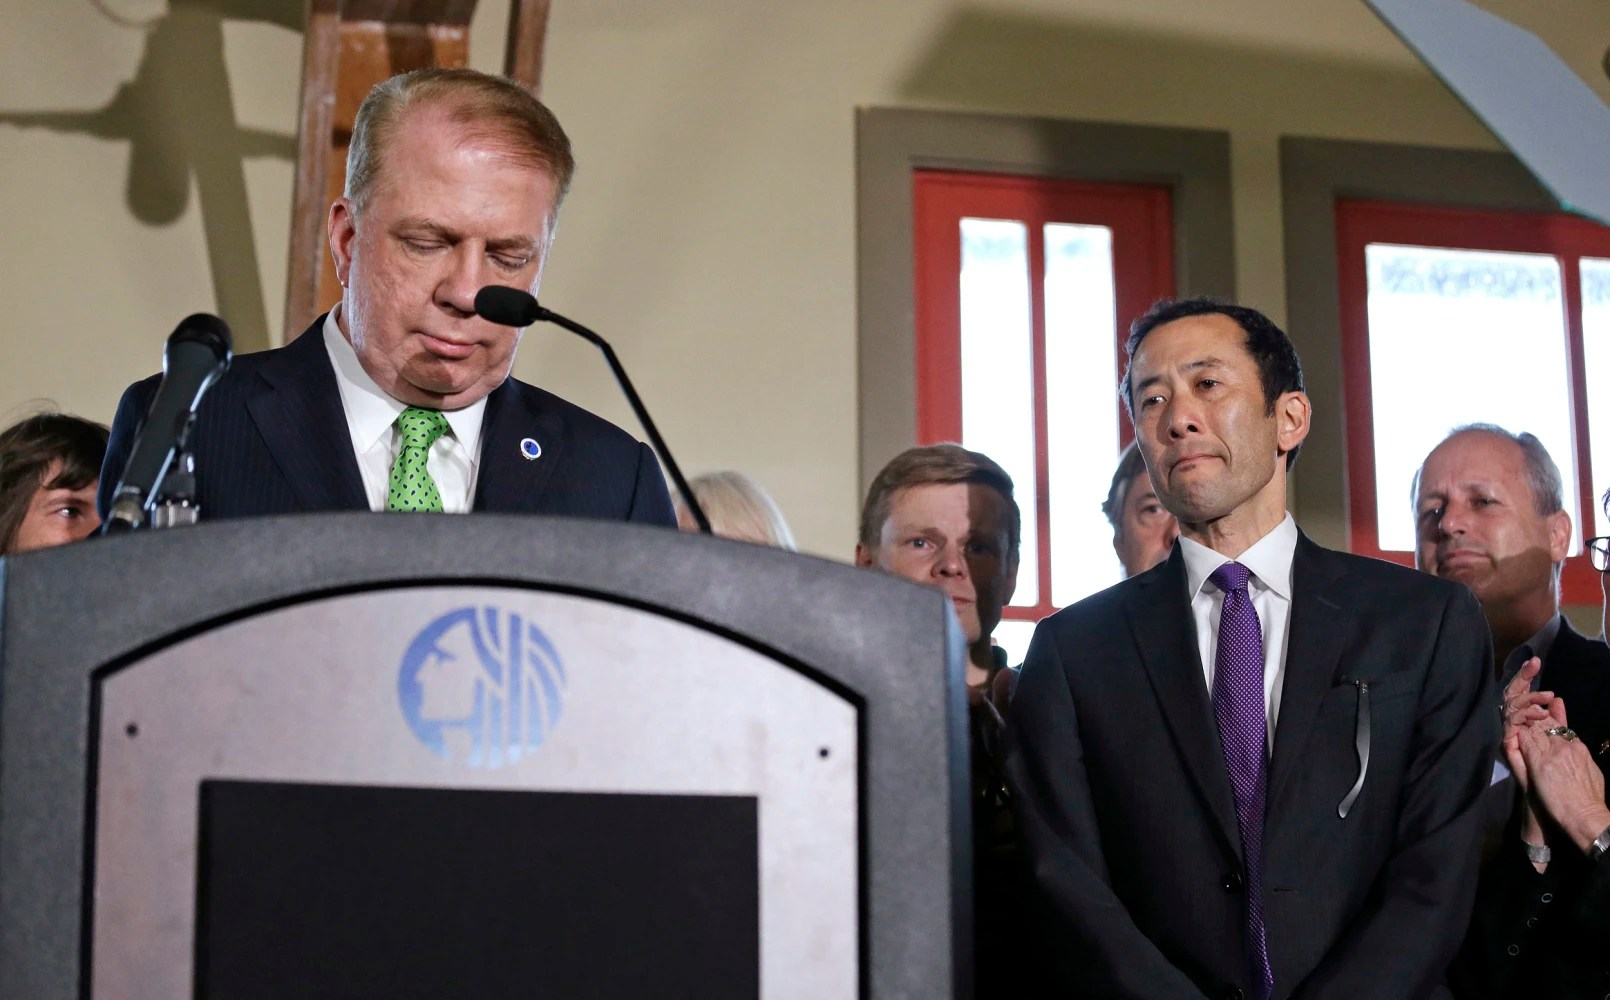 Seattle mayor drops re-election bid after sex abuse claims